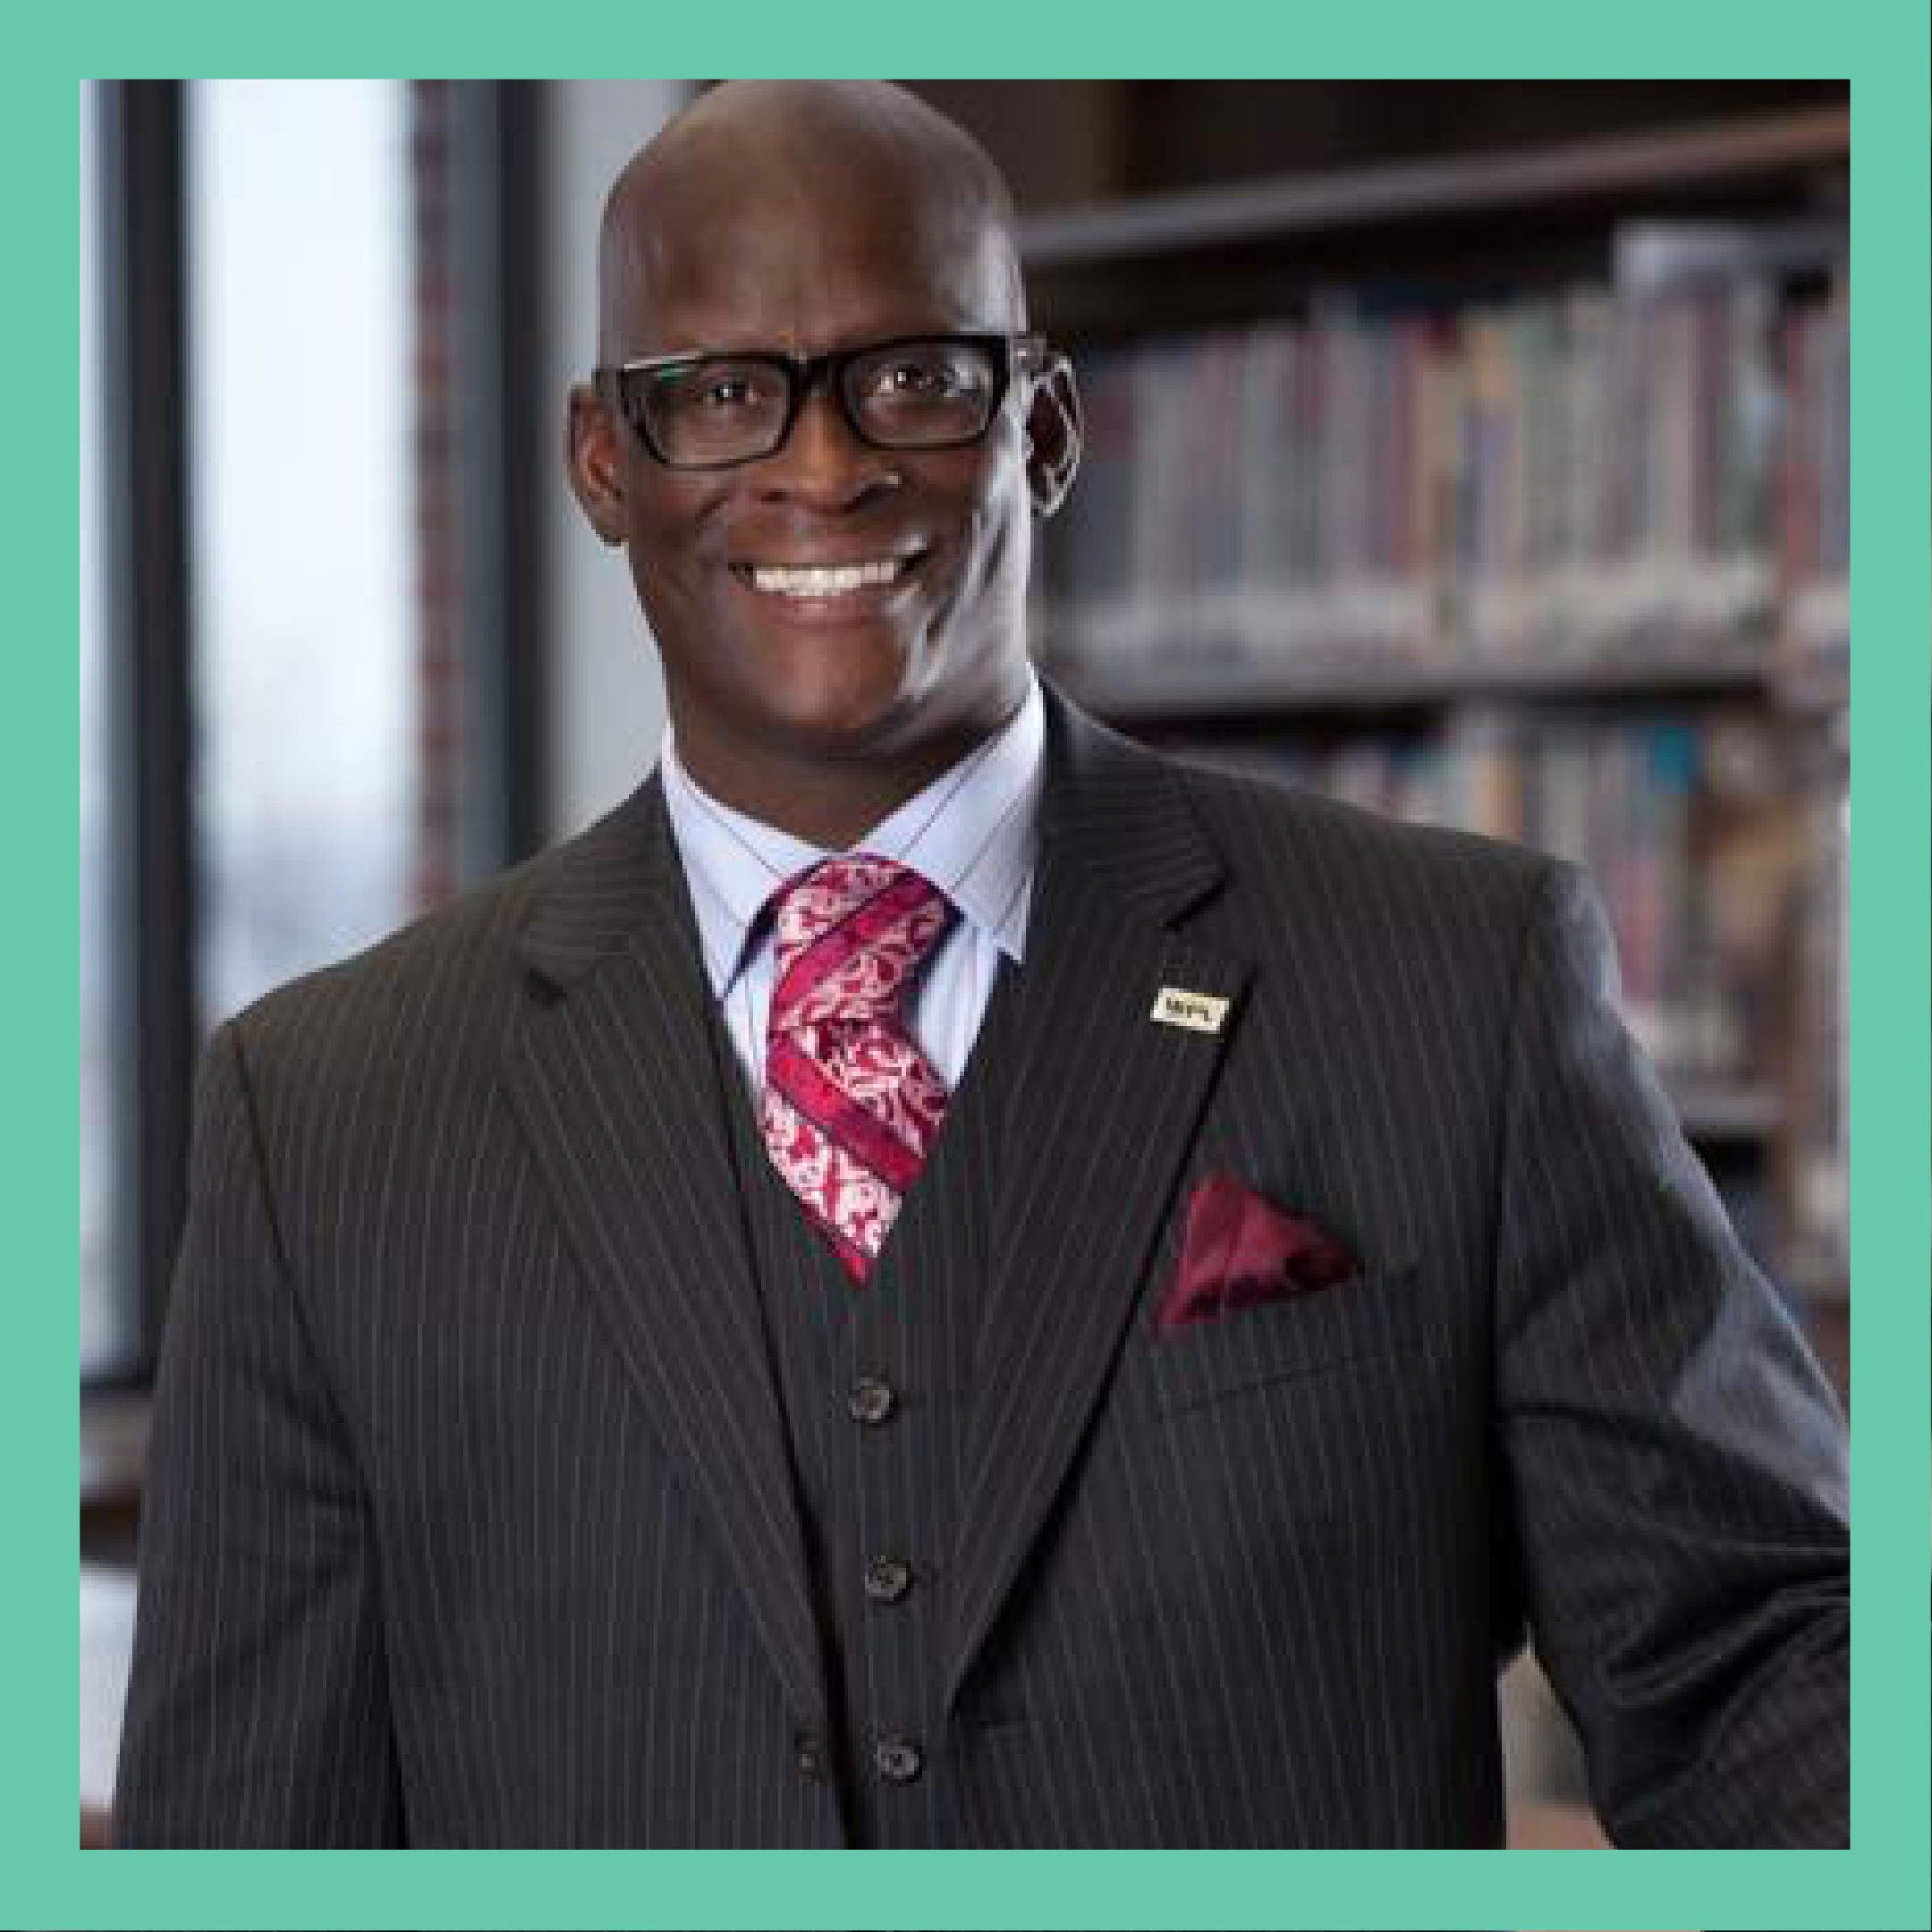 Webinar: Join Us for the Next Teach for Justice Webinar with Dr. Eddie Moore, Jr.